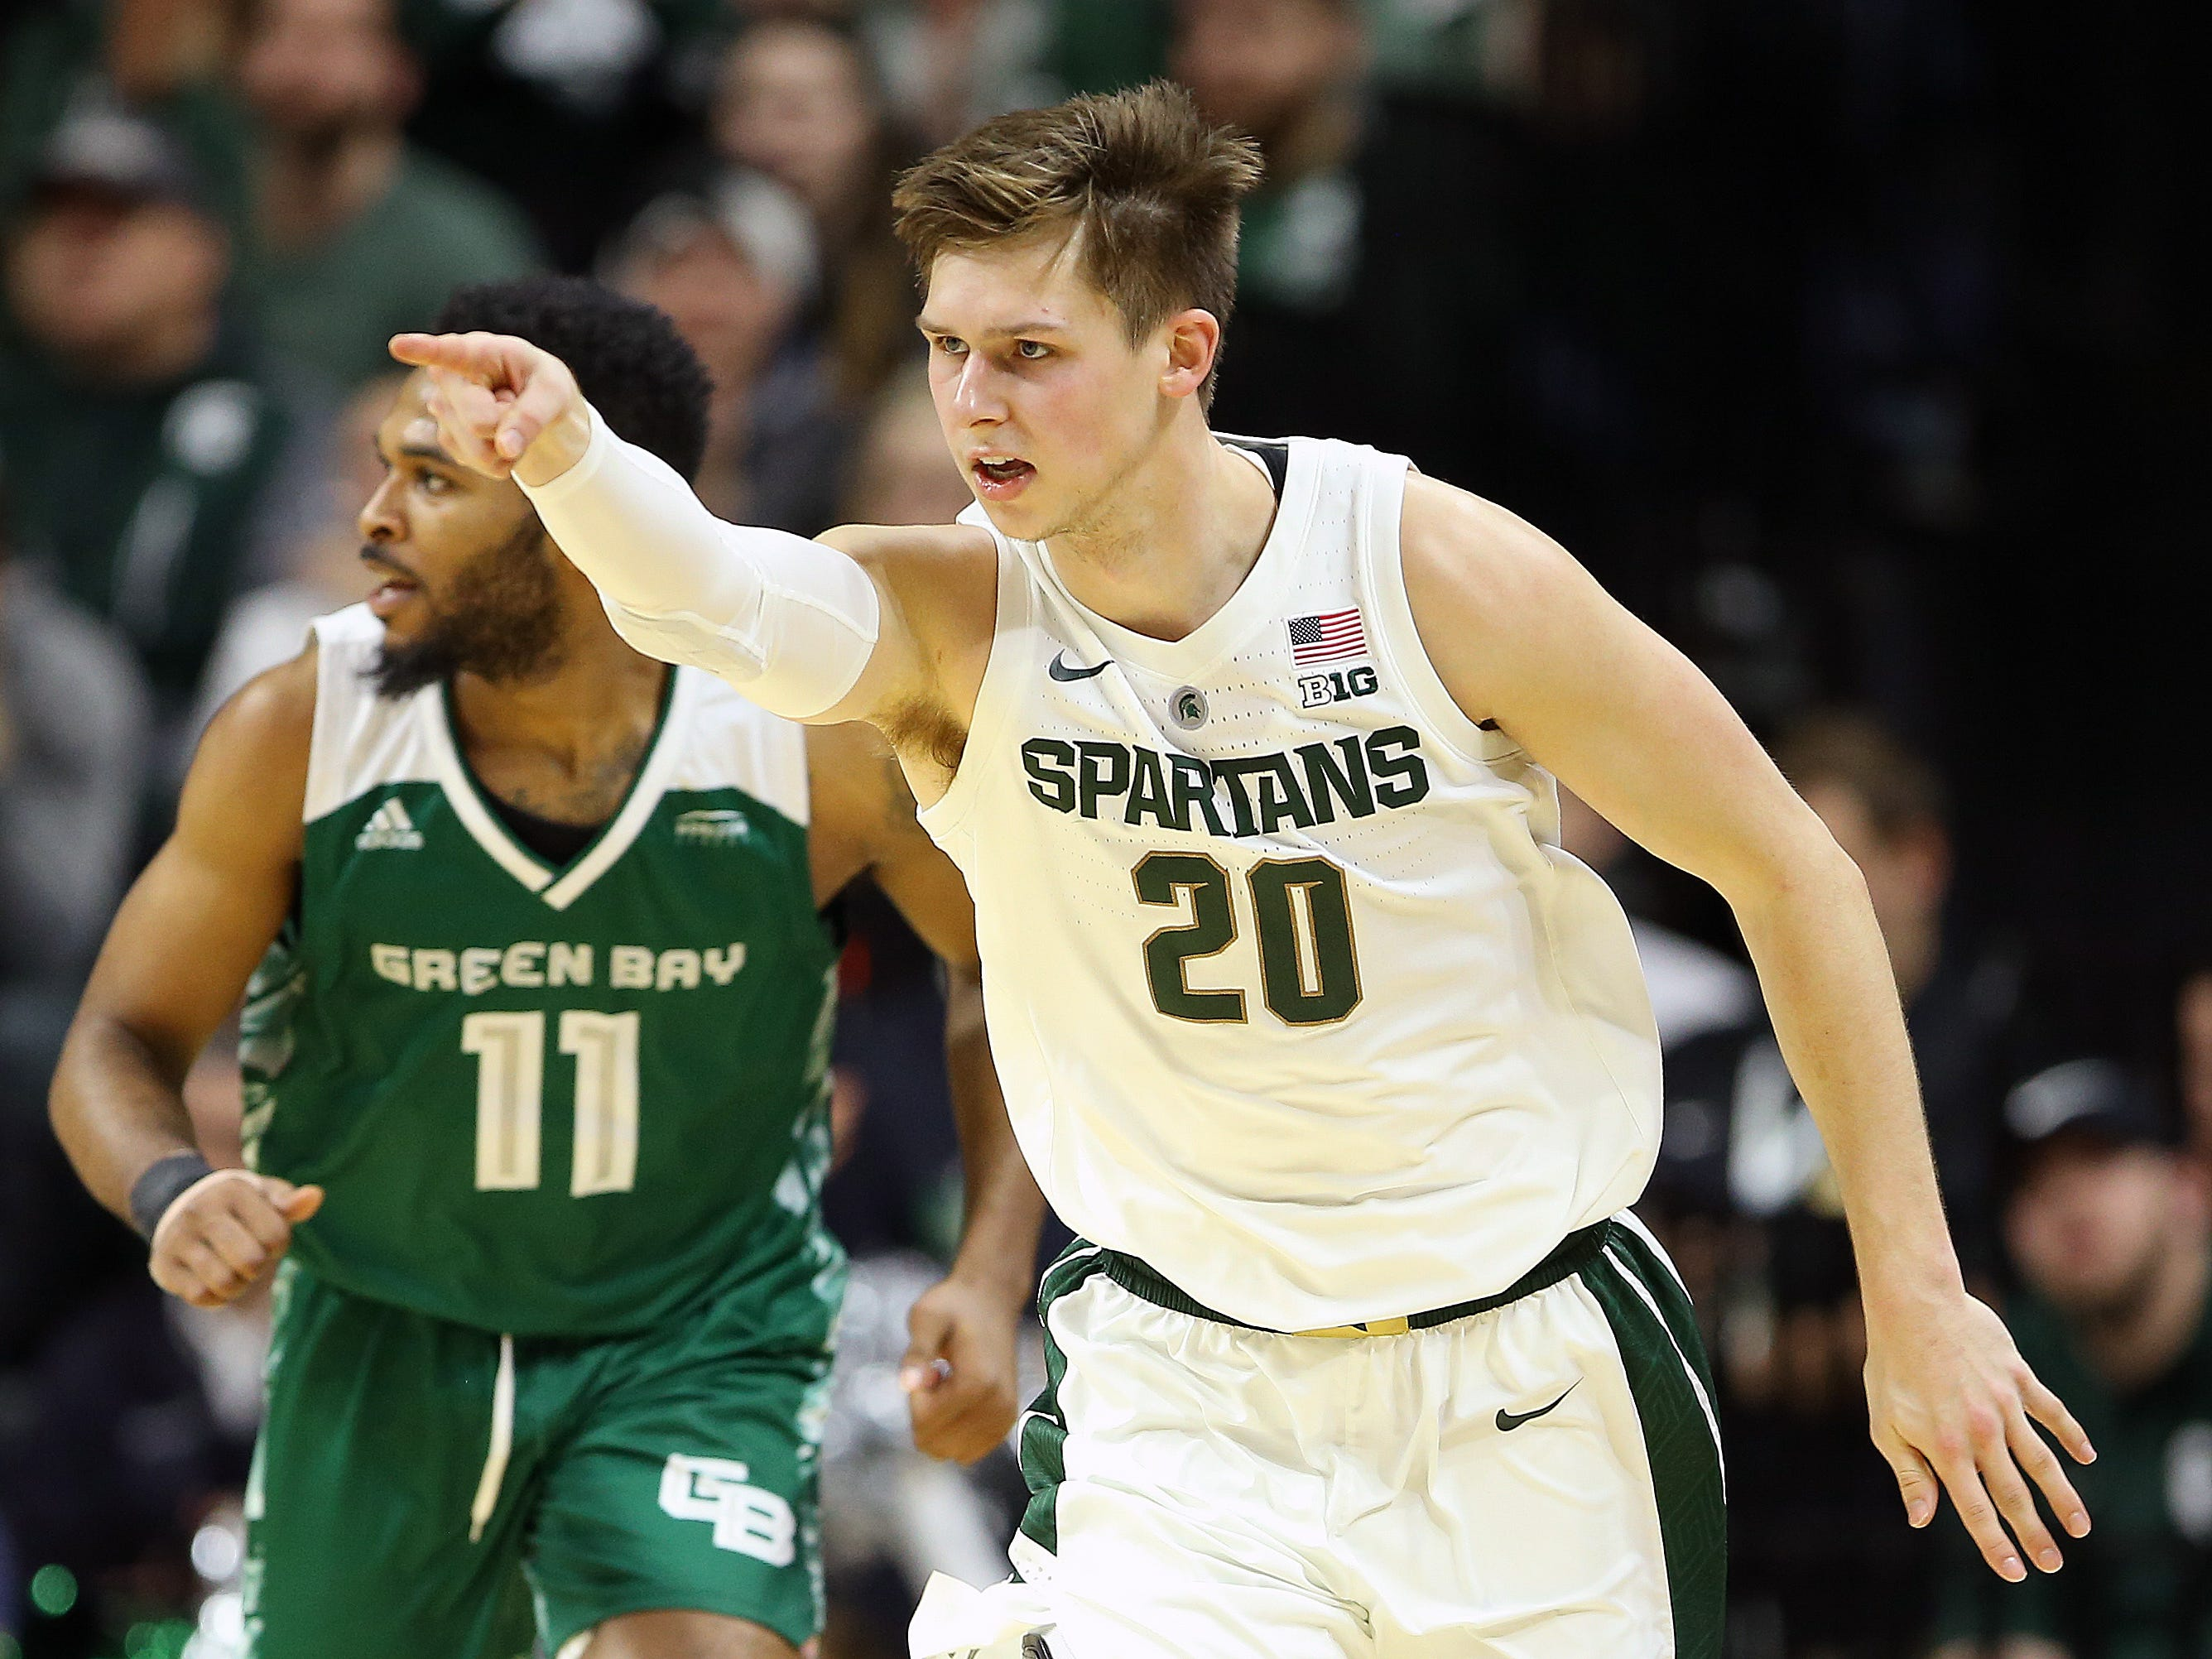 MSU guard Matt McQuaid reacts after hitting a 3-pointer in the first half of Sunday's MSU win over Green Bay at Breslin Center.